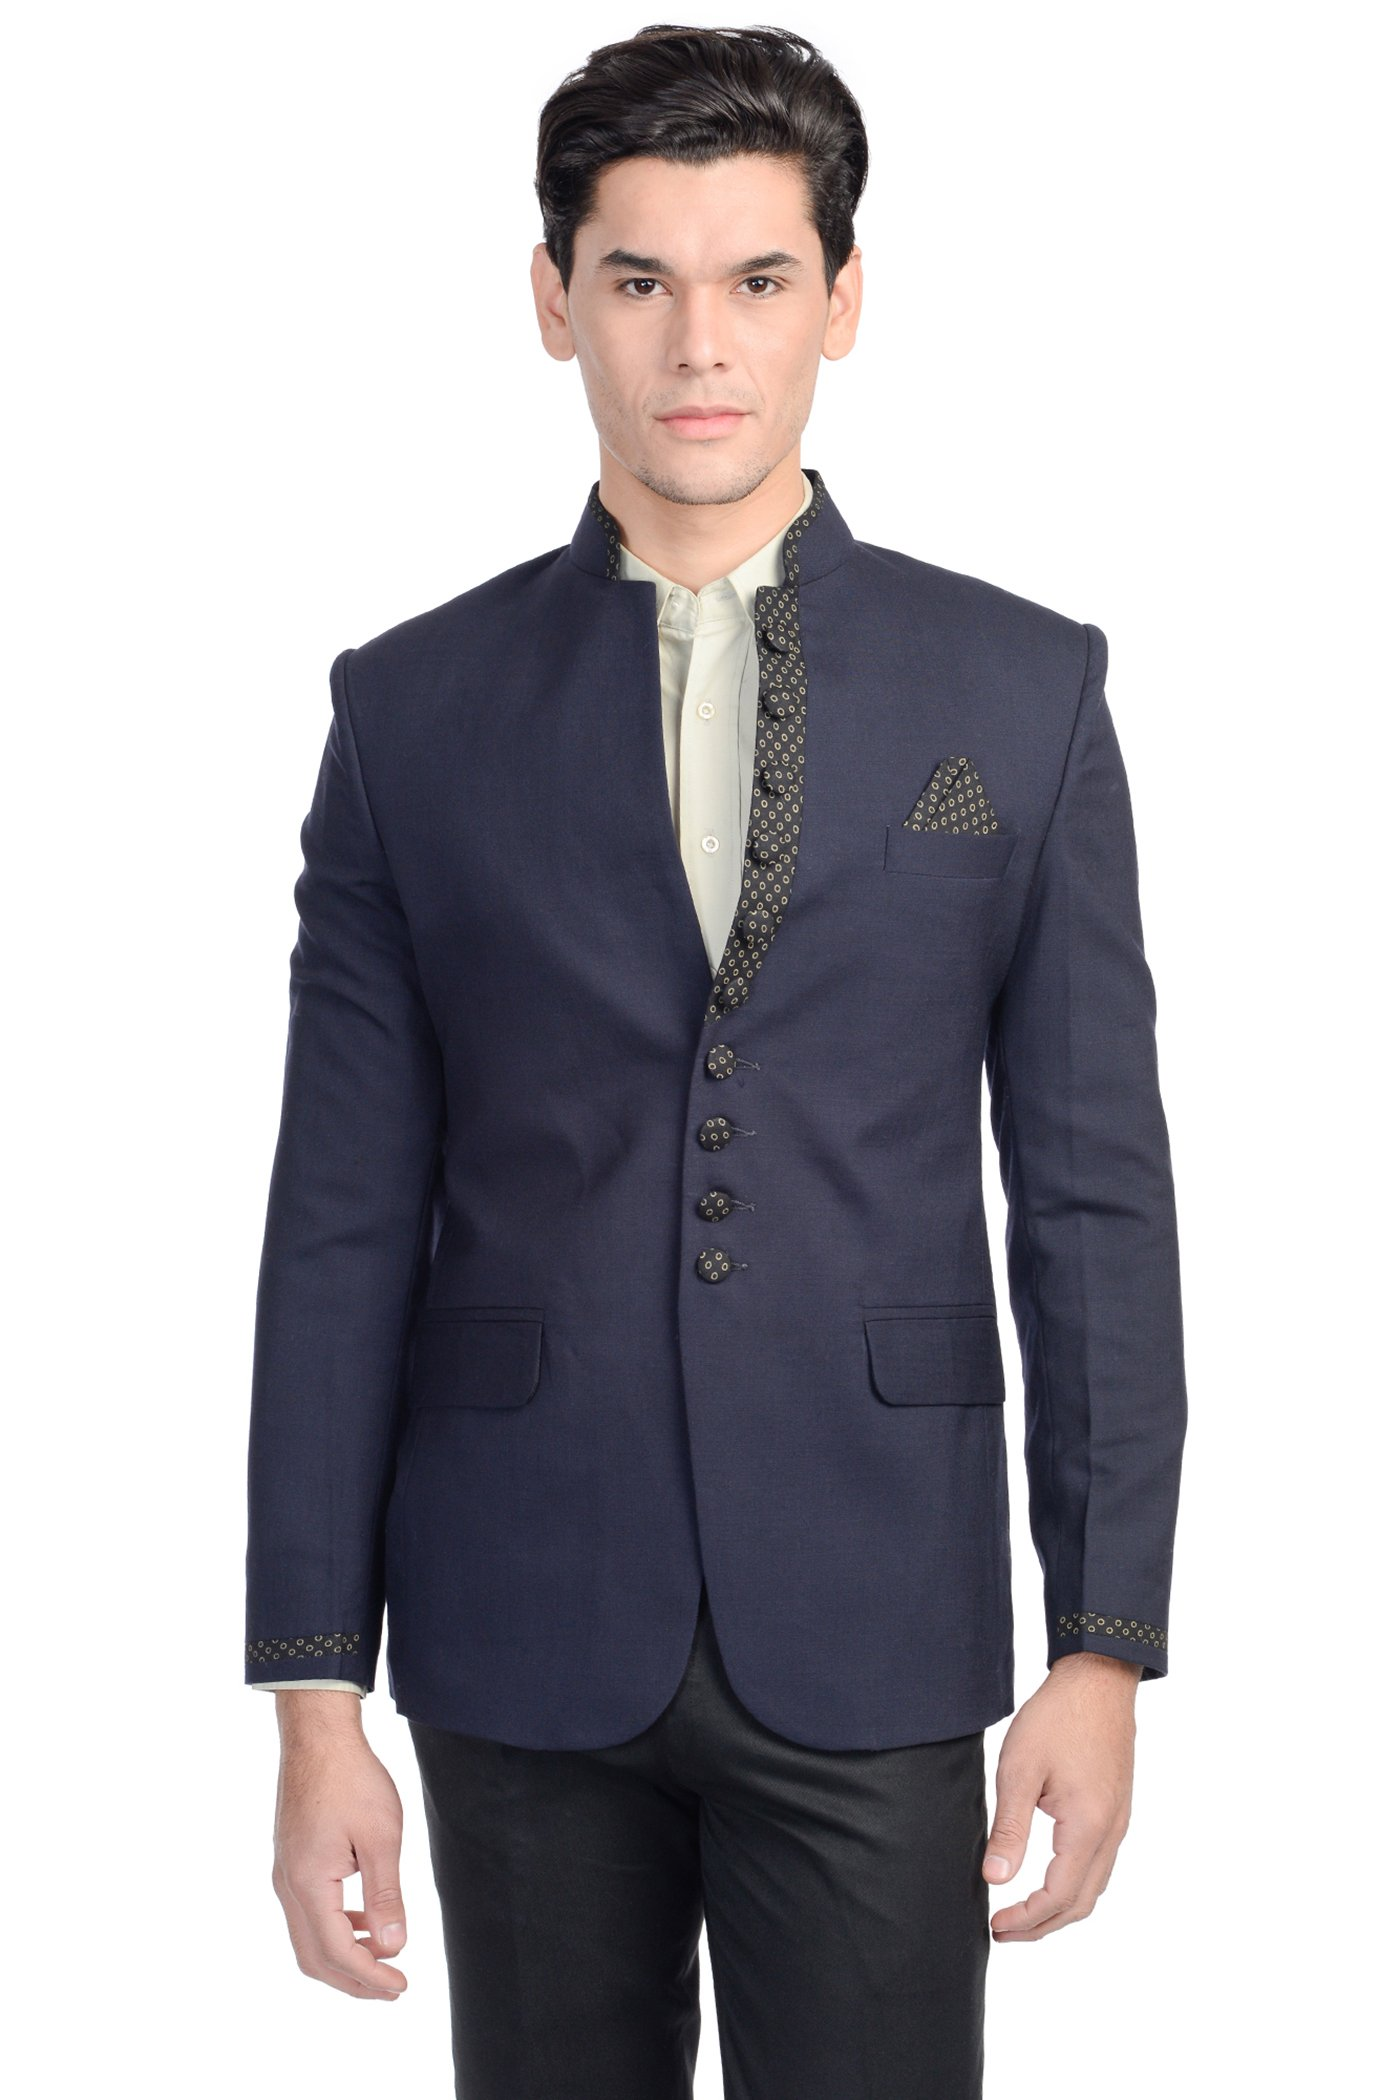 WINTAGE Men's Rayon Cotton Modified Bandhgala Festive and Casual Navy Nehru Multiple Colors